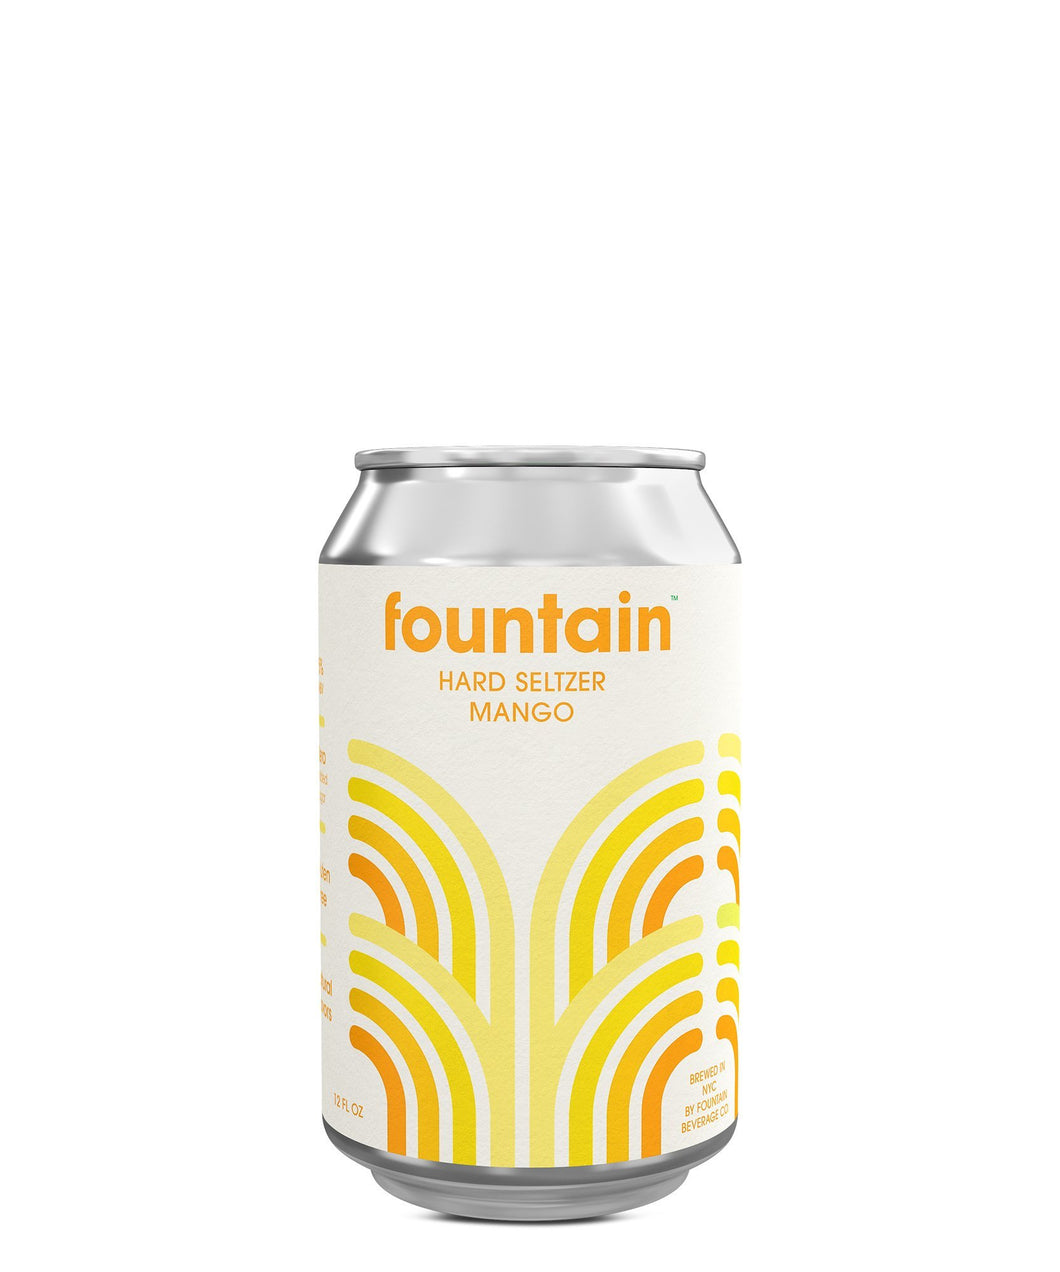 Fountain Hard Seltzer Mango - Fountain Delivered By TapRm